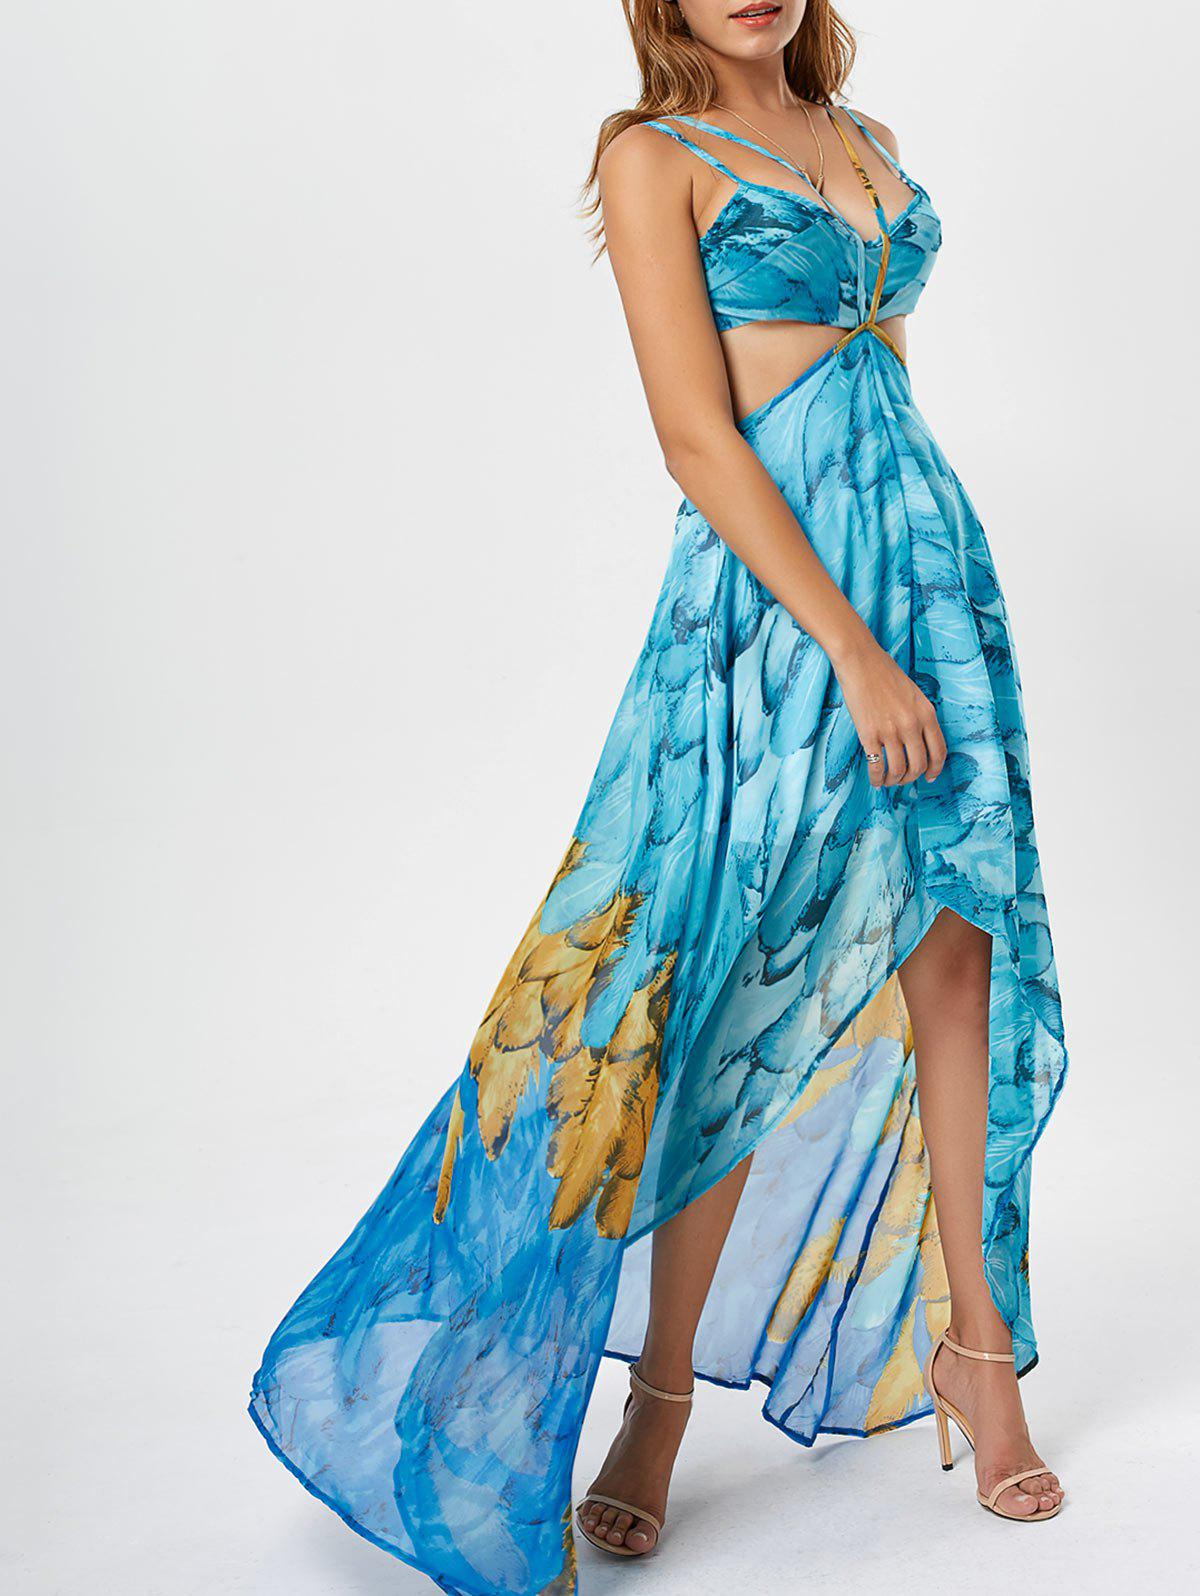 Unique Cutout Printed Chiffon High Low Flowy Dress